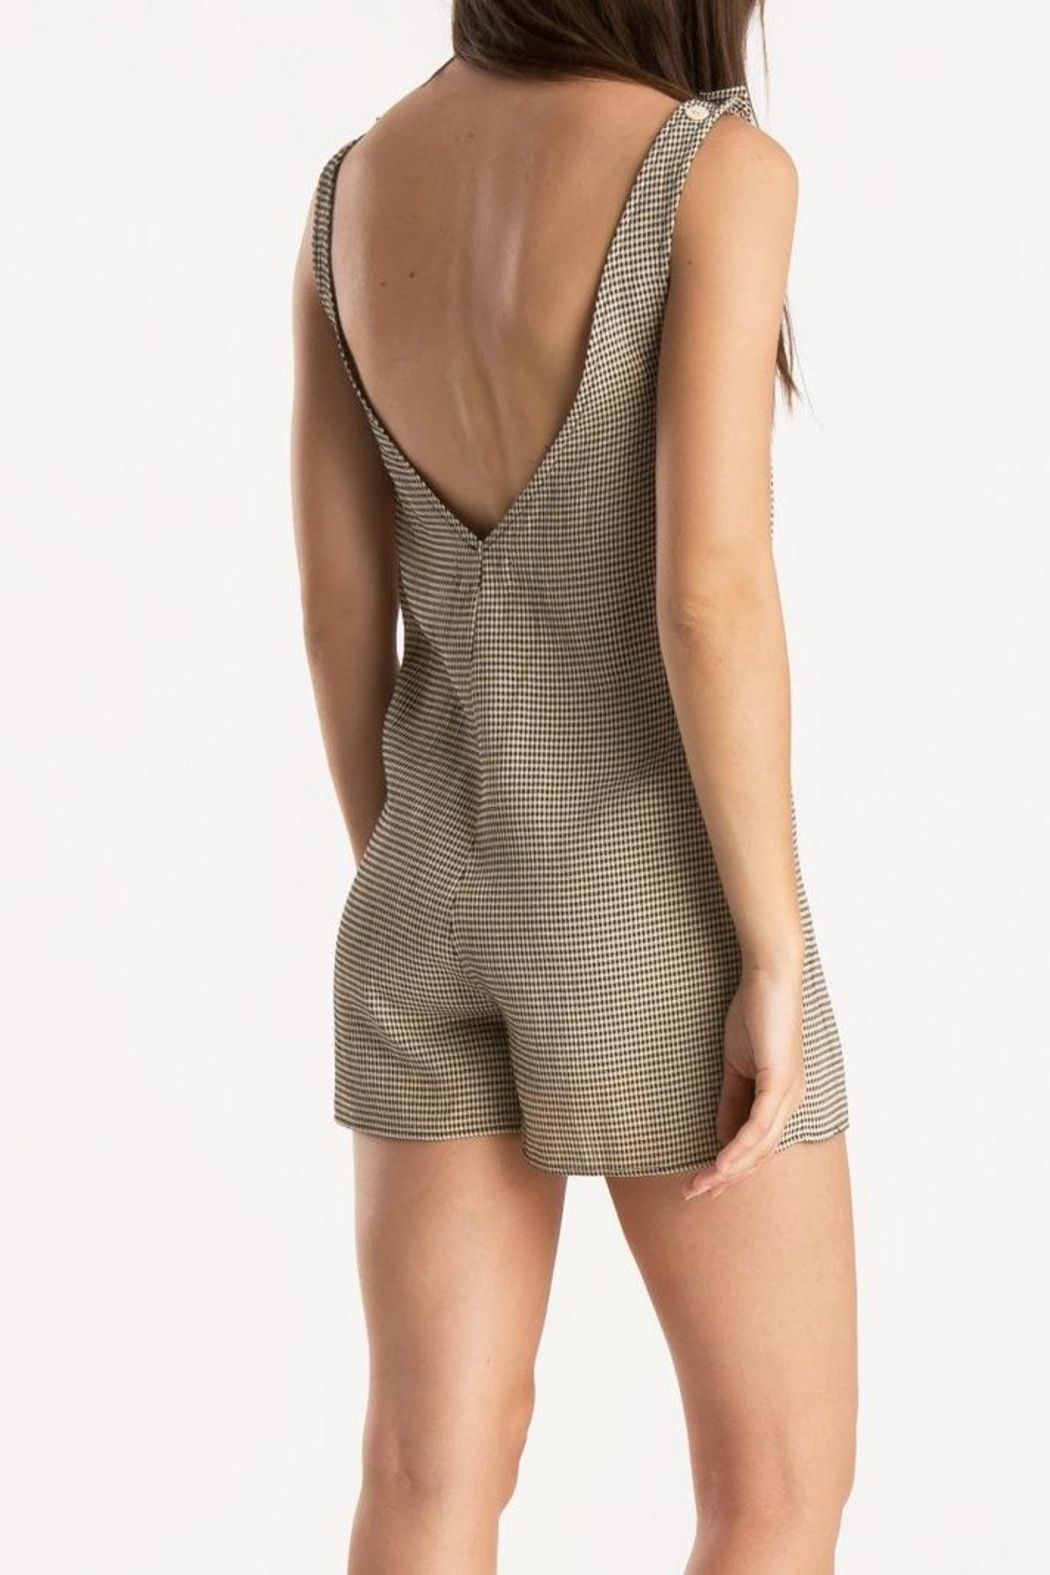 Whimsy and Row Gingham Kira Romper - Back Cropped Image